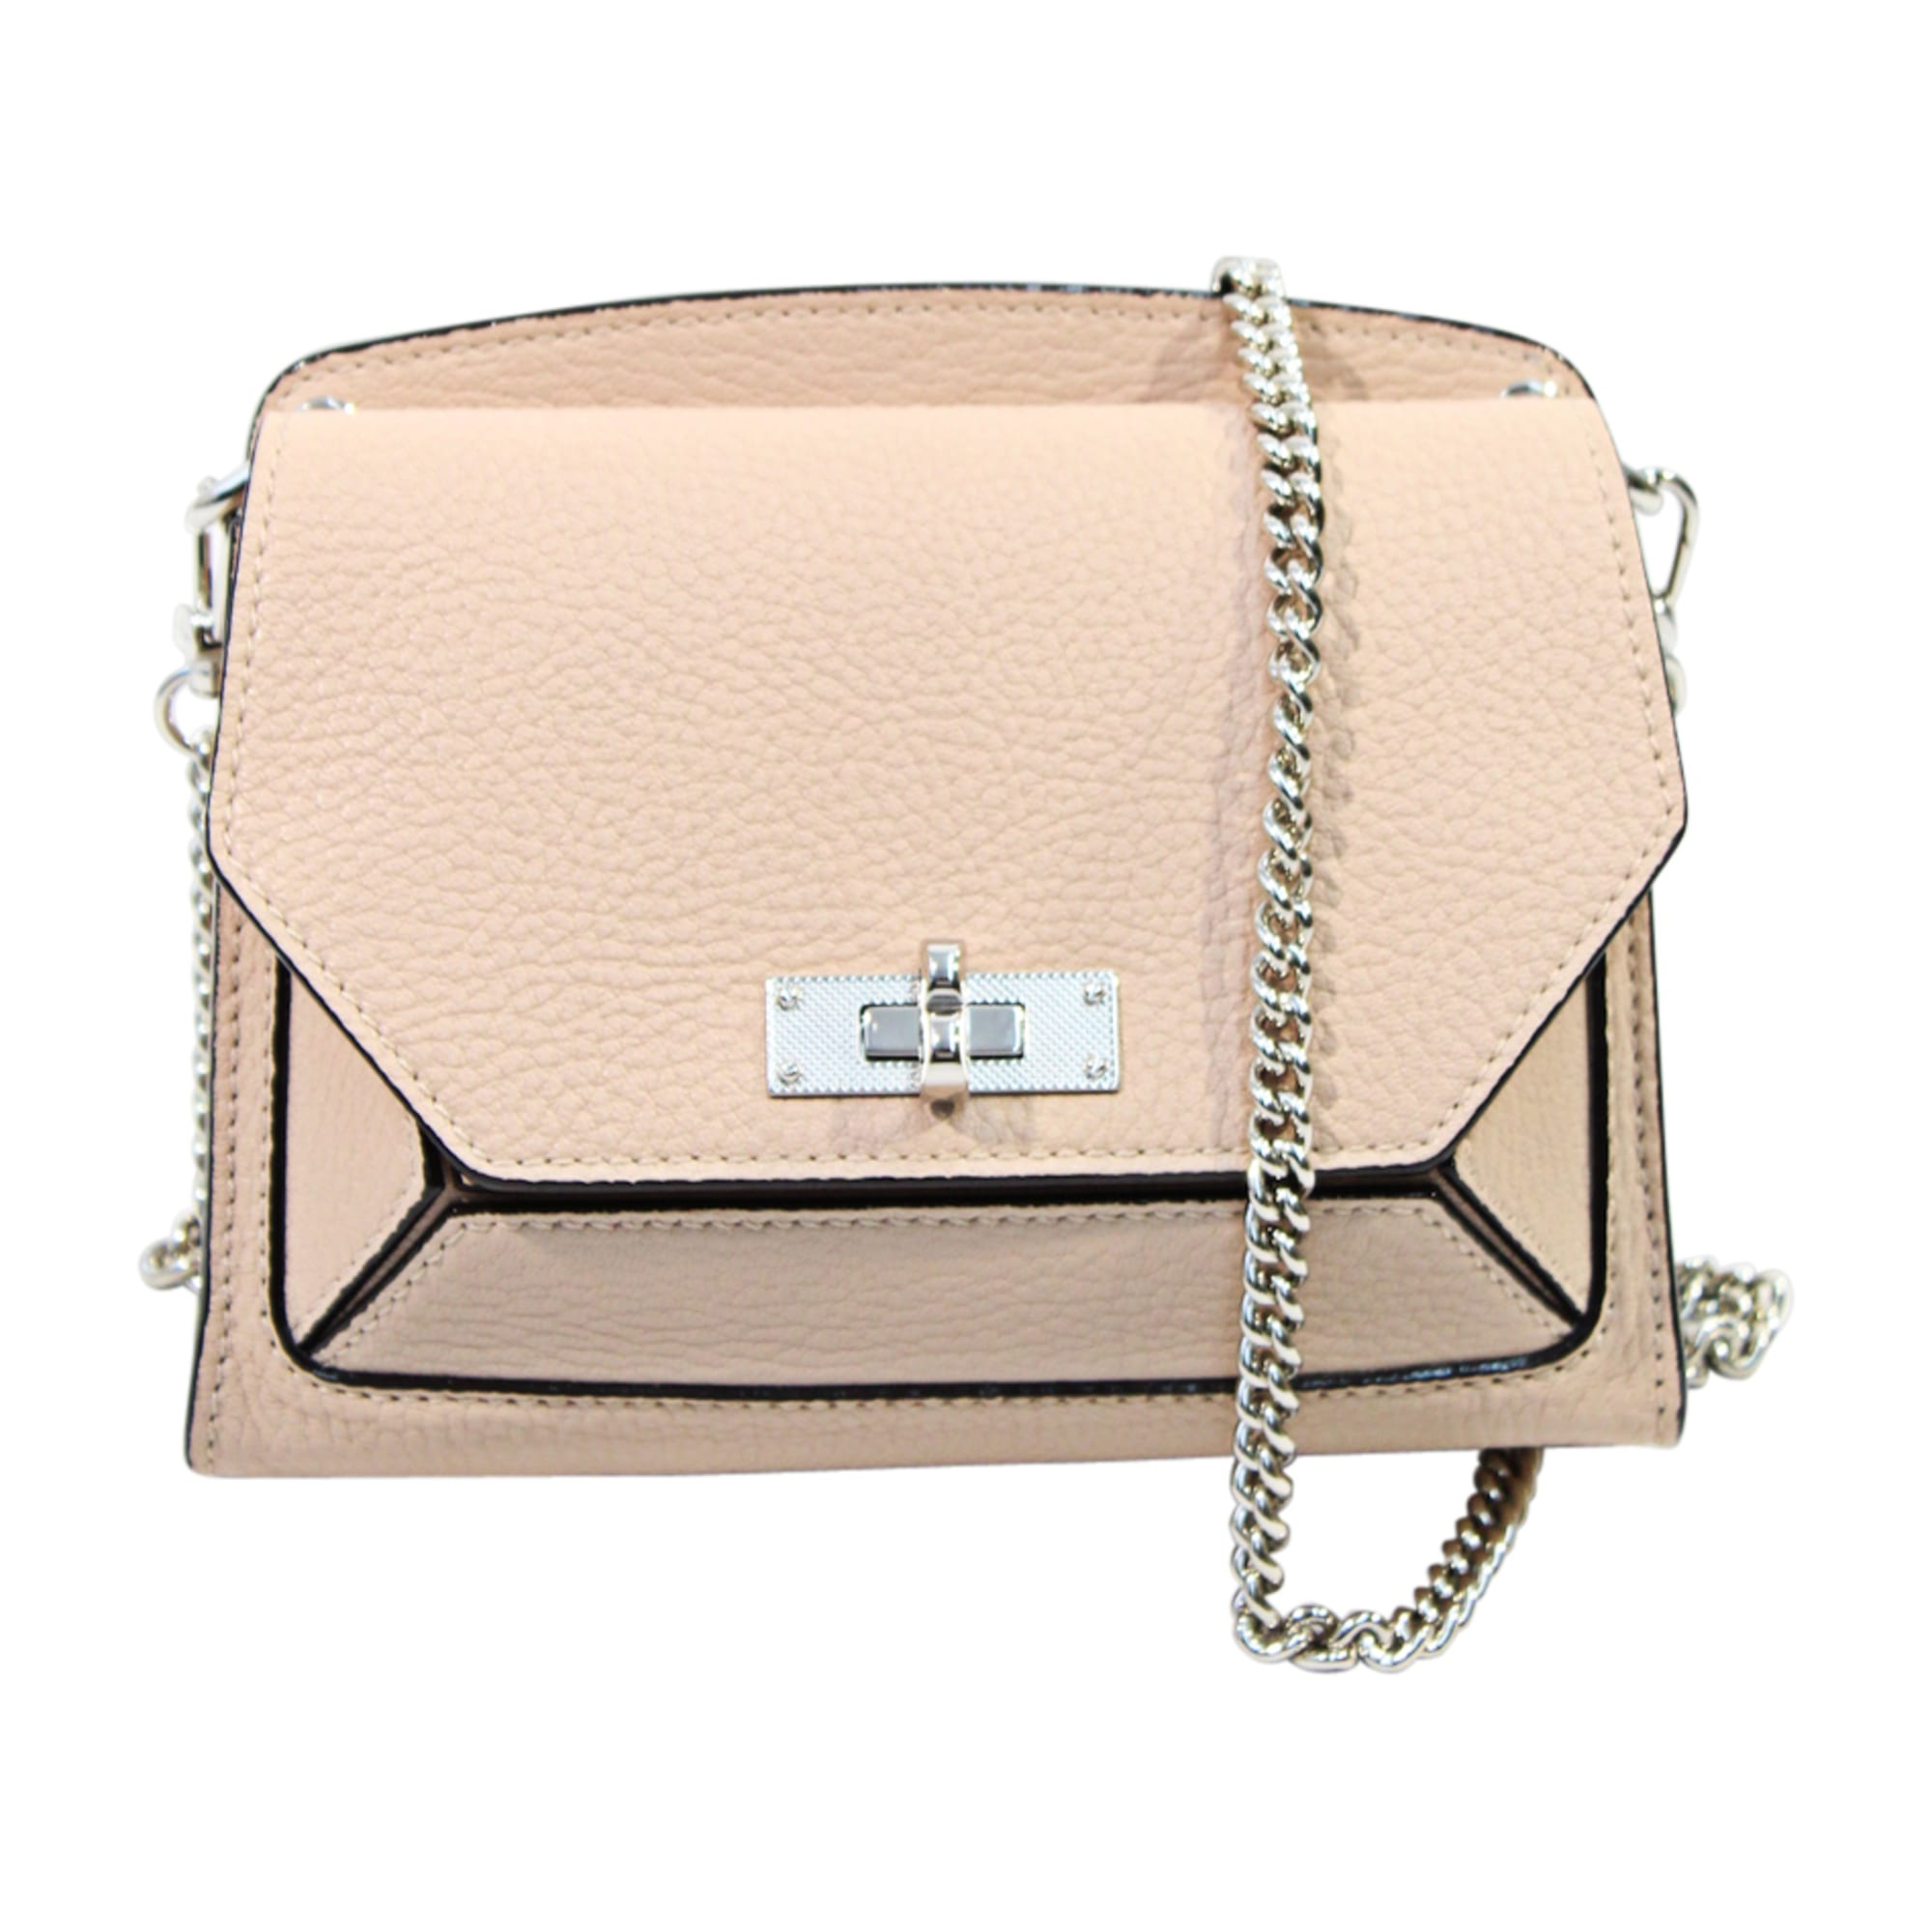 Leather Shoulder Bag BALLY Beige, camel